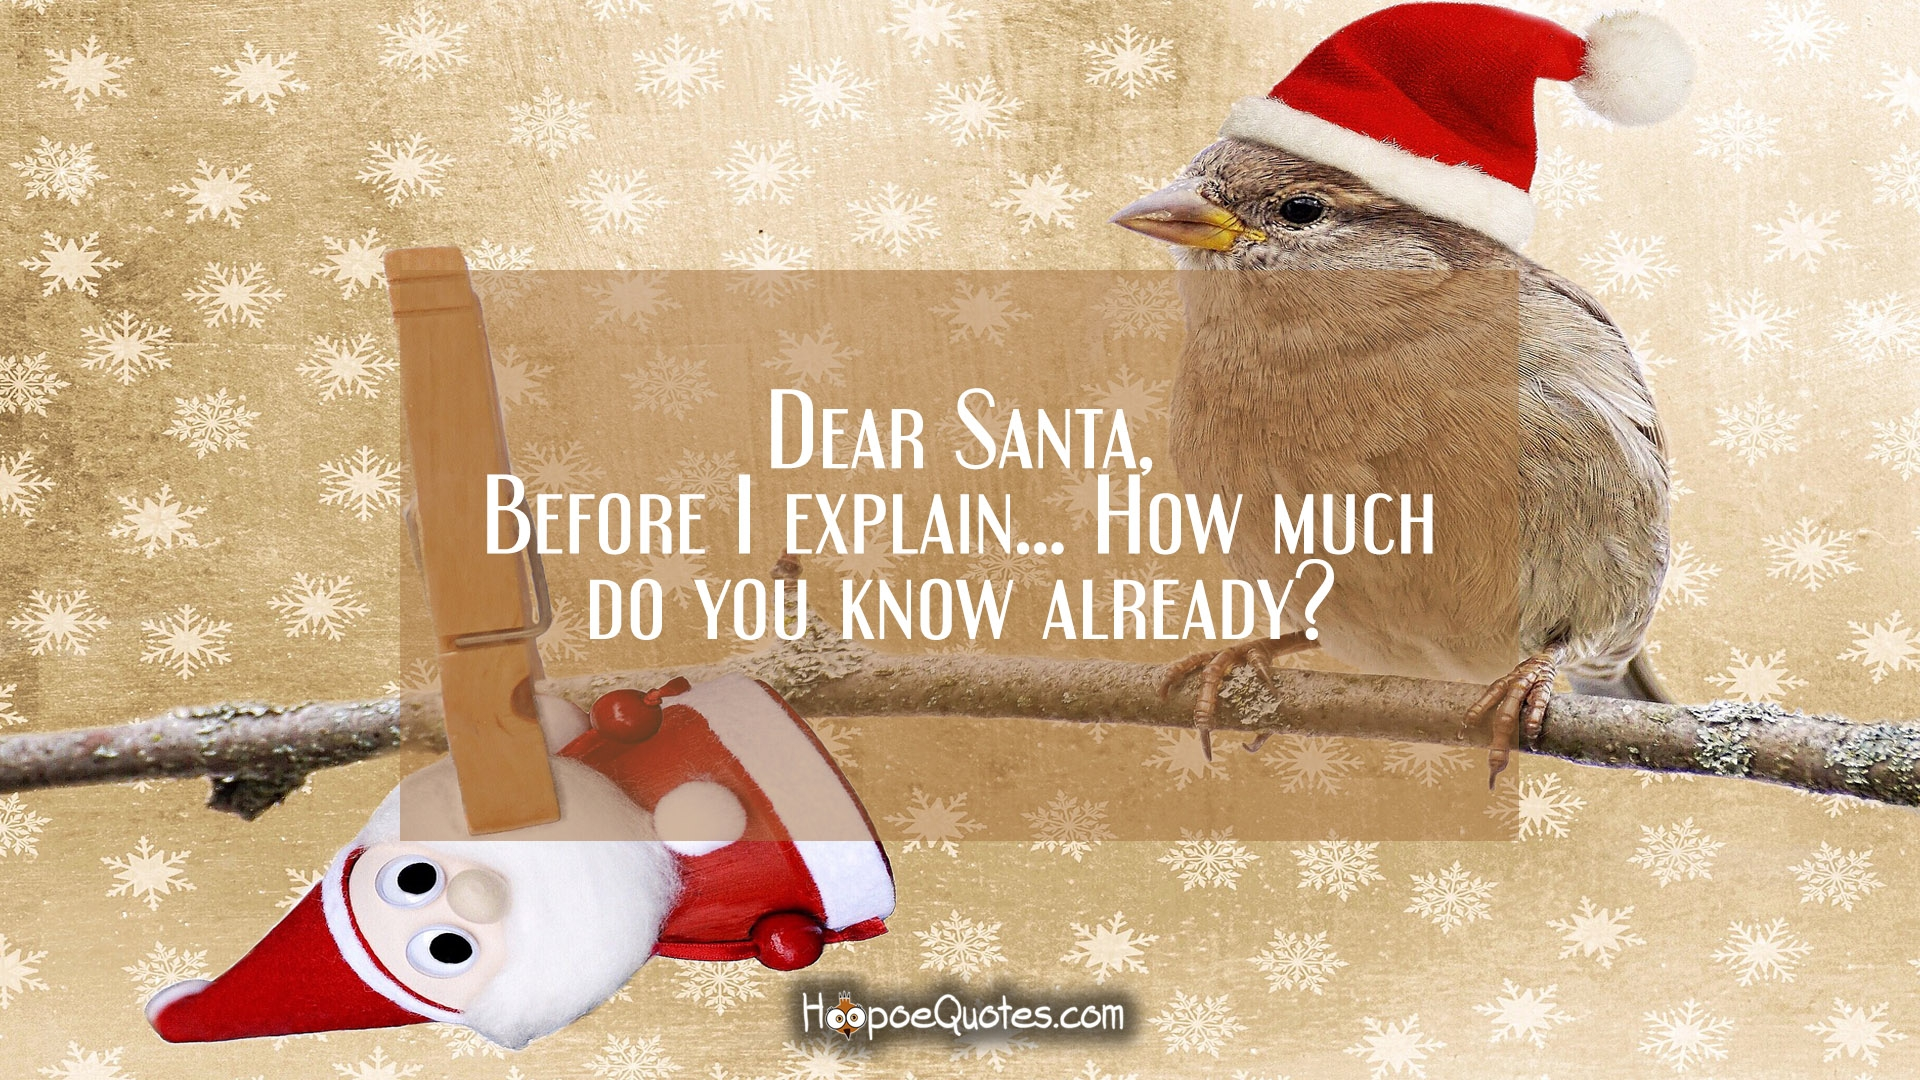 Dear Santa Before I Explain How Much Do You Know